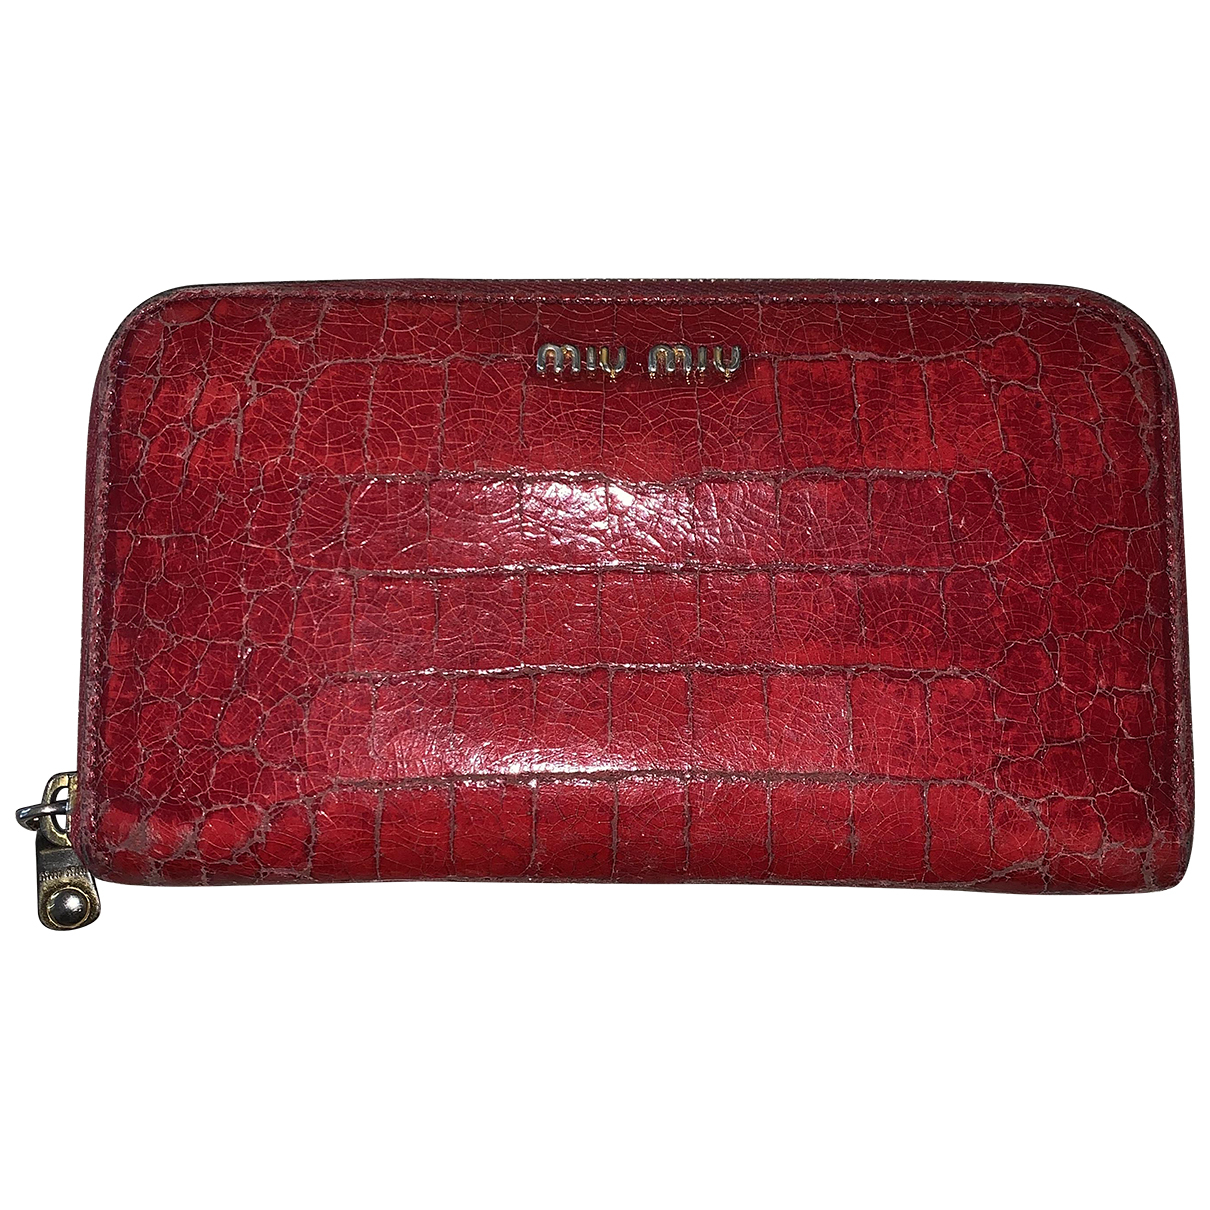 Miu Miu \N Red Patent leather wallet for Women \N